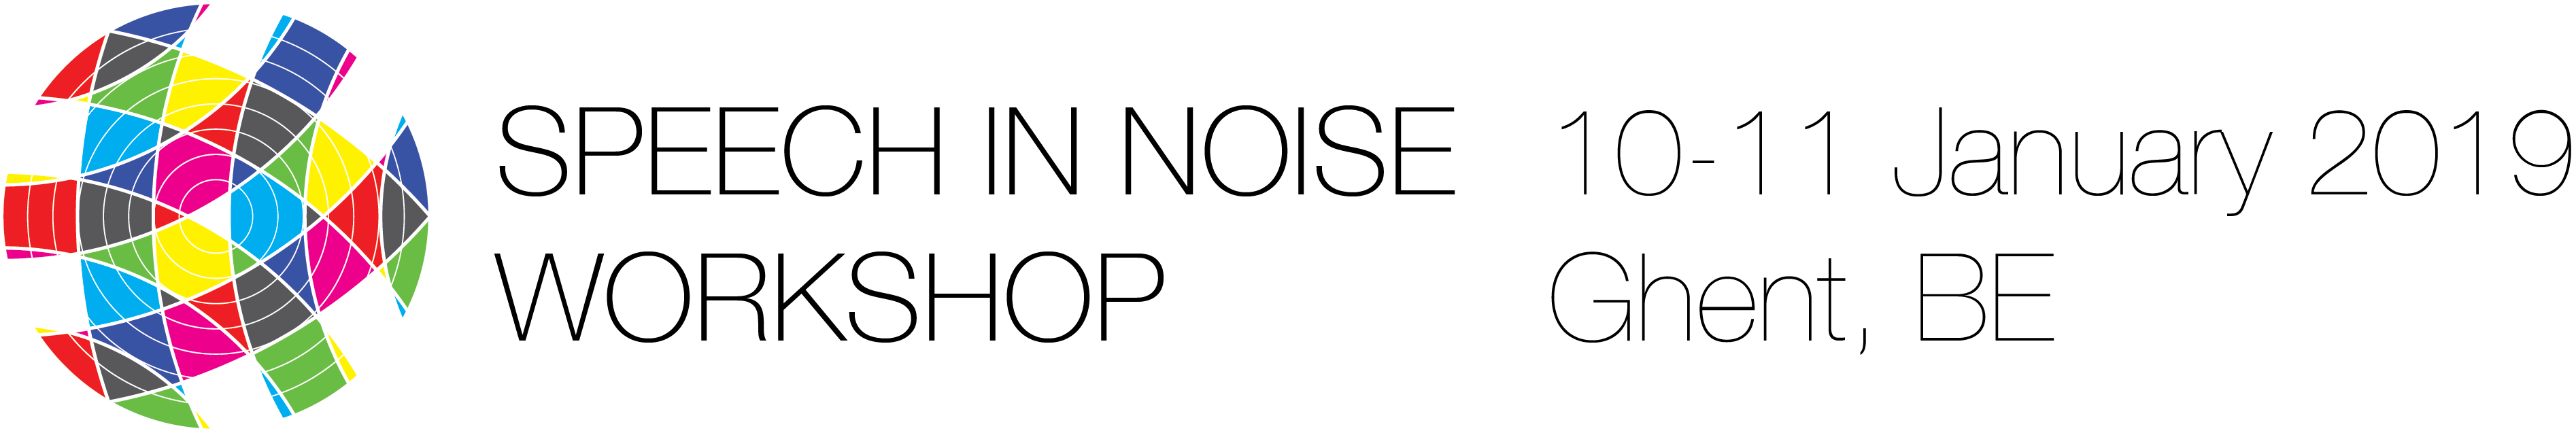 11th Speech in Noise Workshop, 10-11 January 2019, Ghent, BE